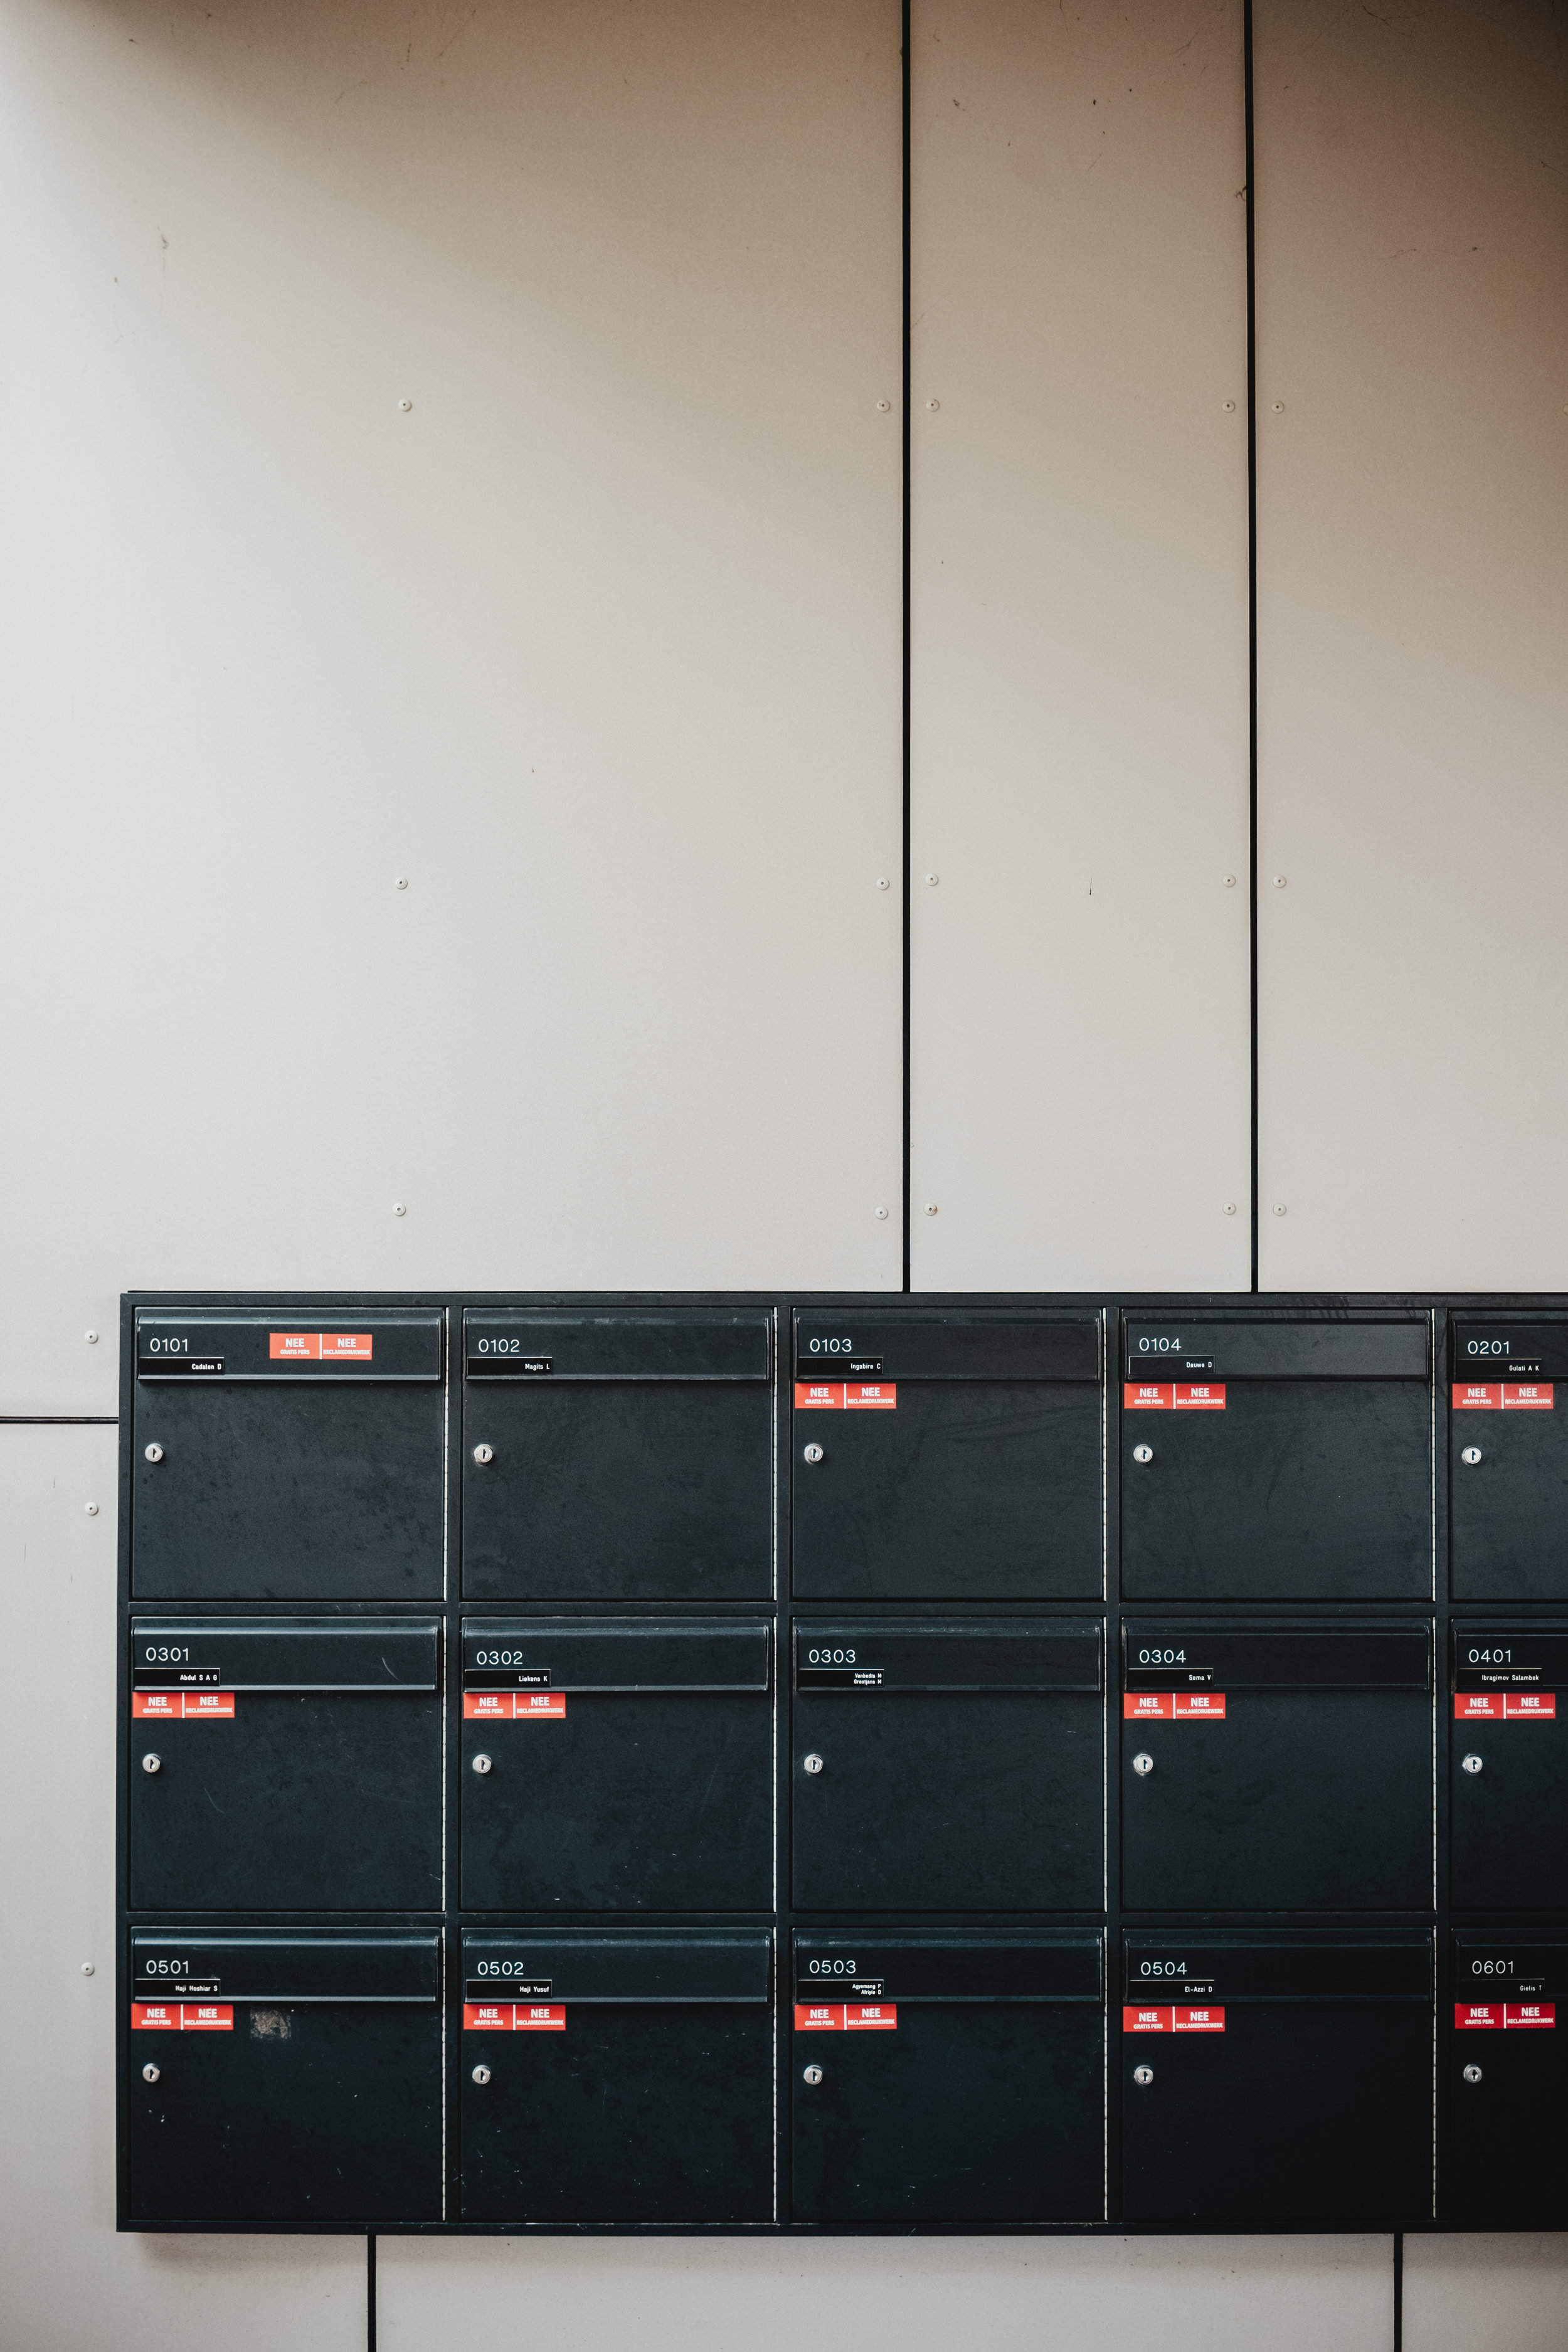 Make Space - Some of the items we clear:old filing cabinetsold laptopsdesktops and printerswaste stationeryconfidential wasteelectronic wastehazardous waste